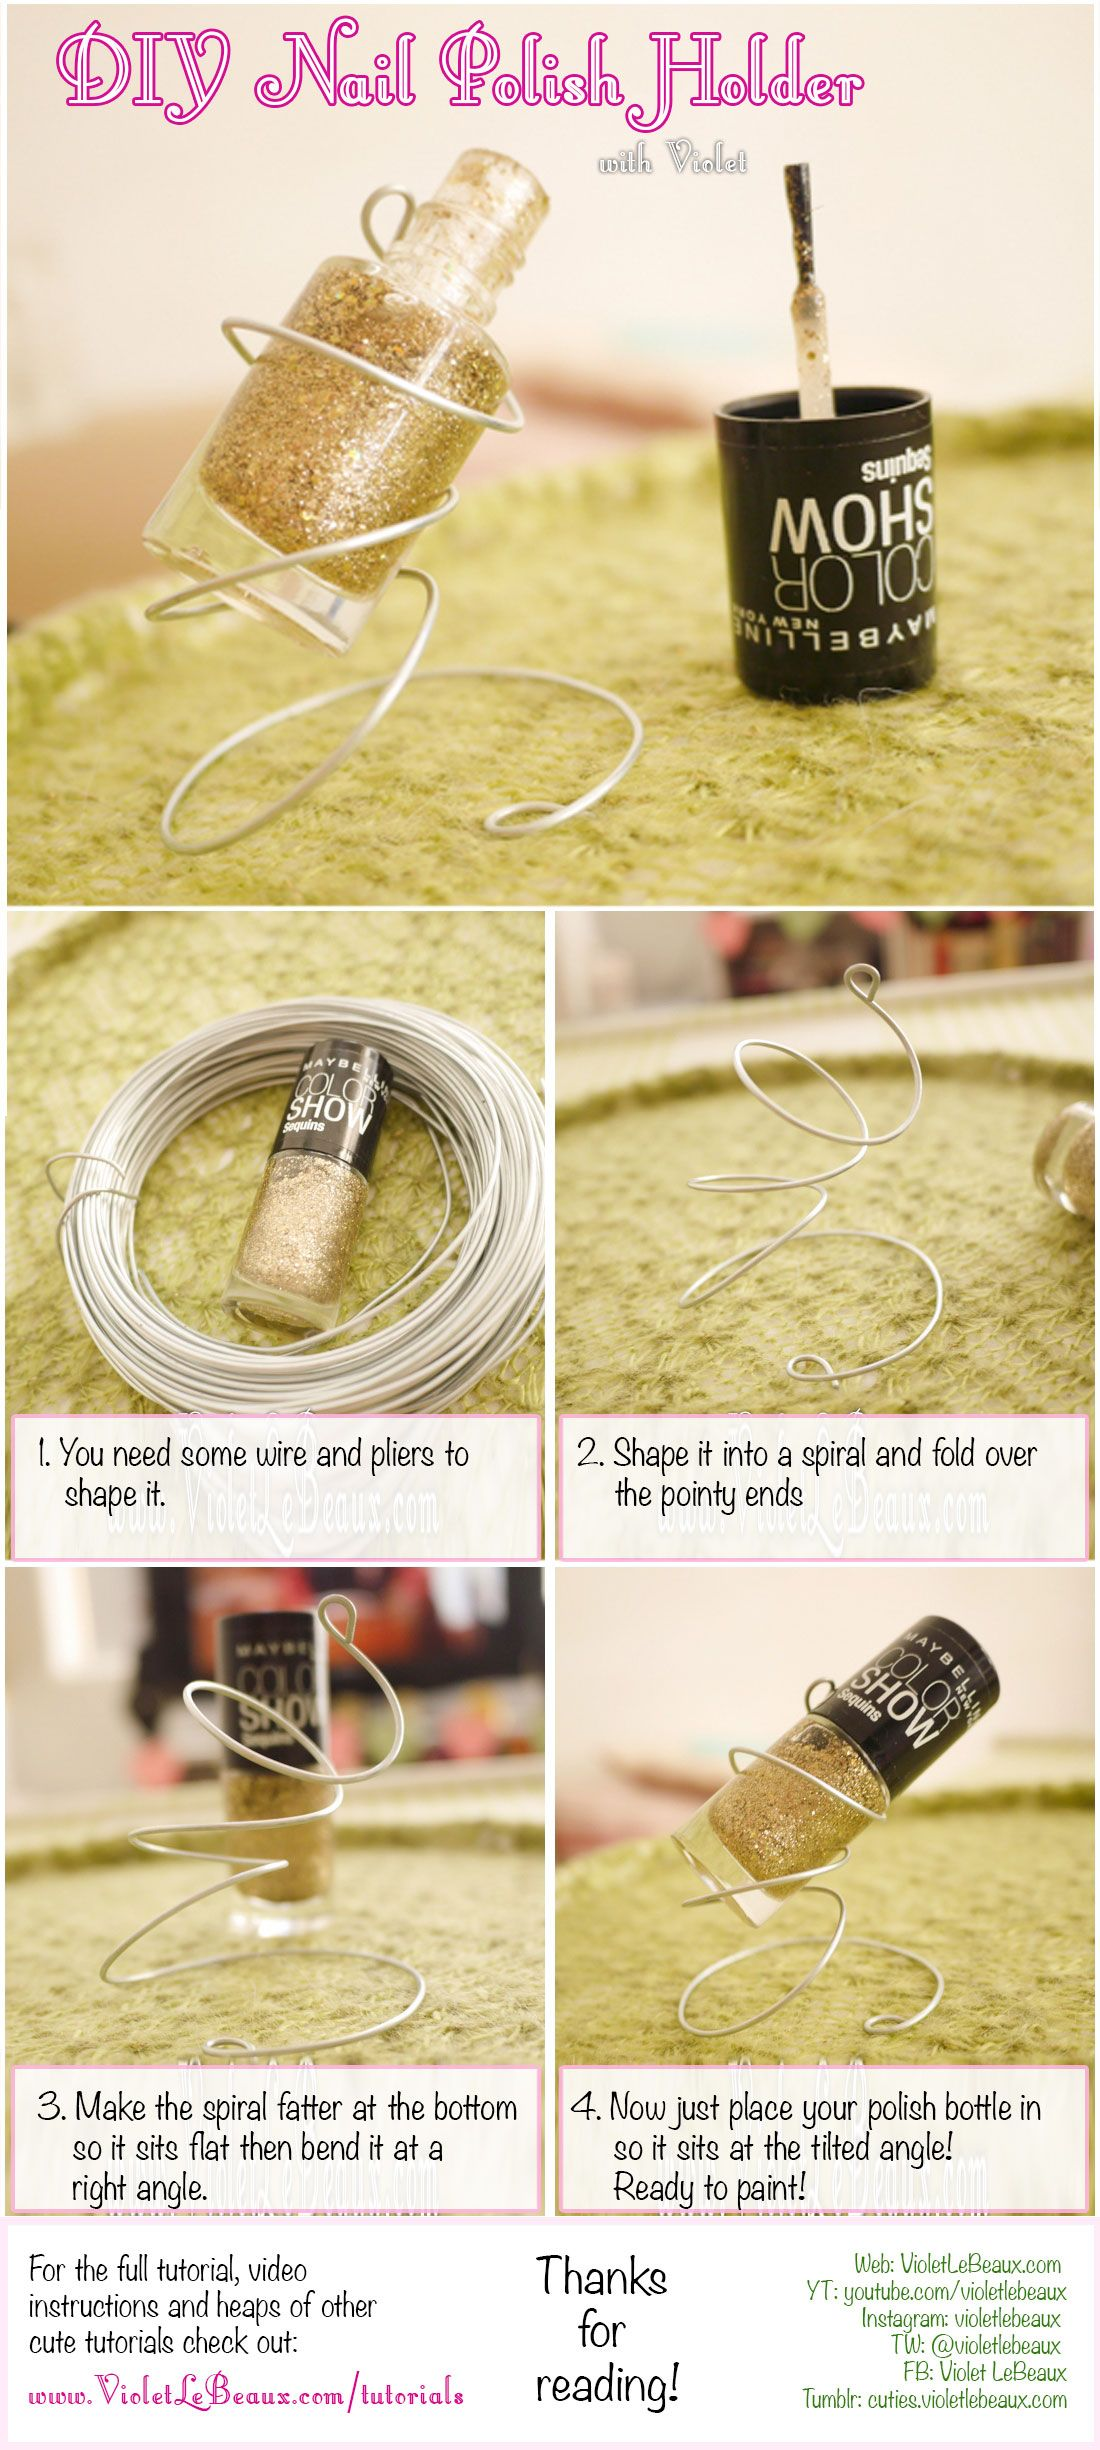 How to make your own tilted stand for nail polish bottles - DIY Nail ...